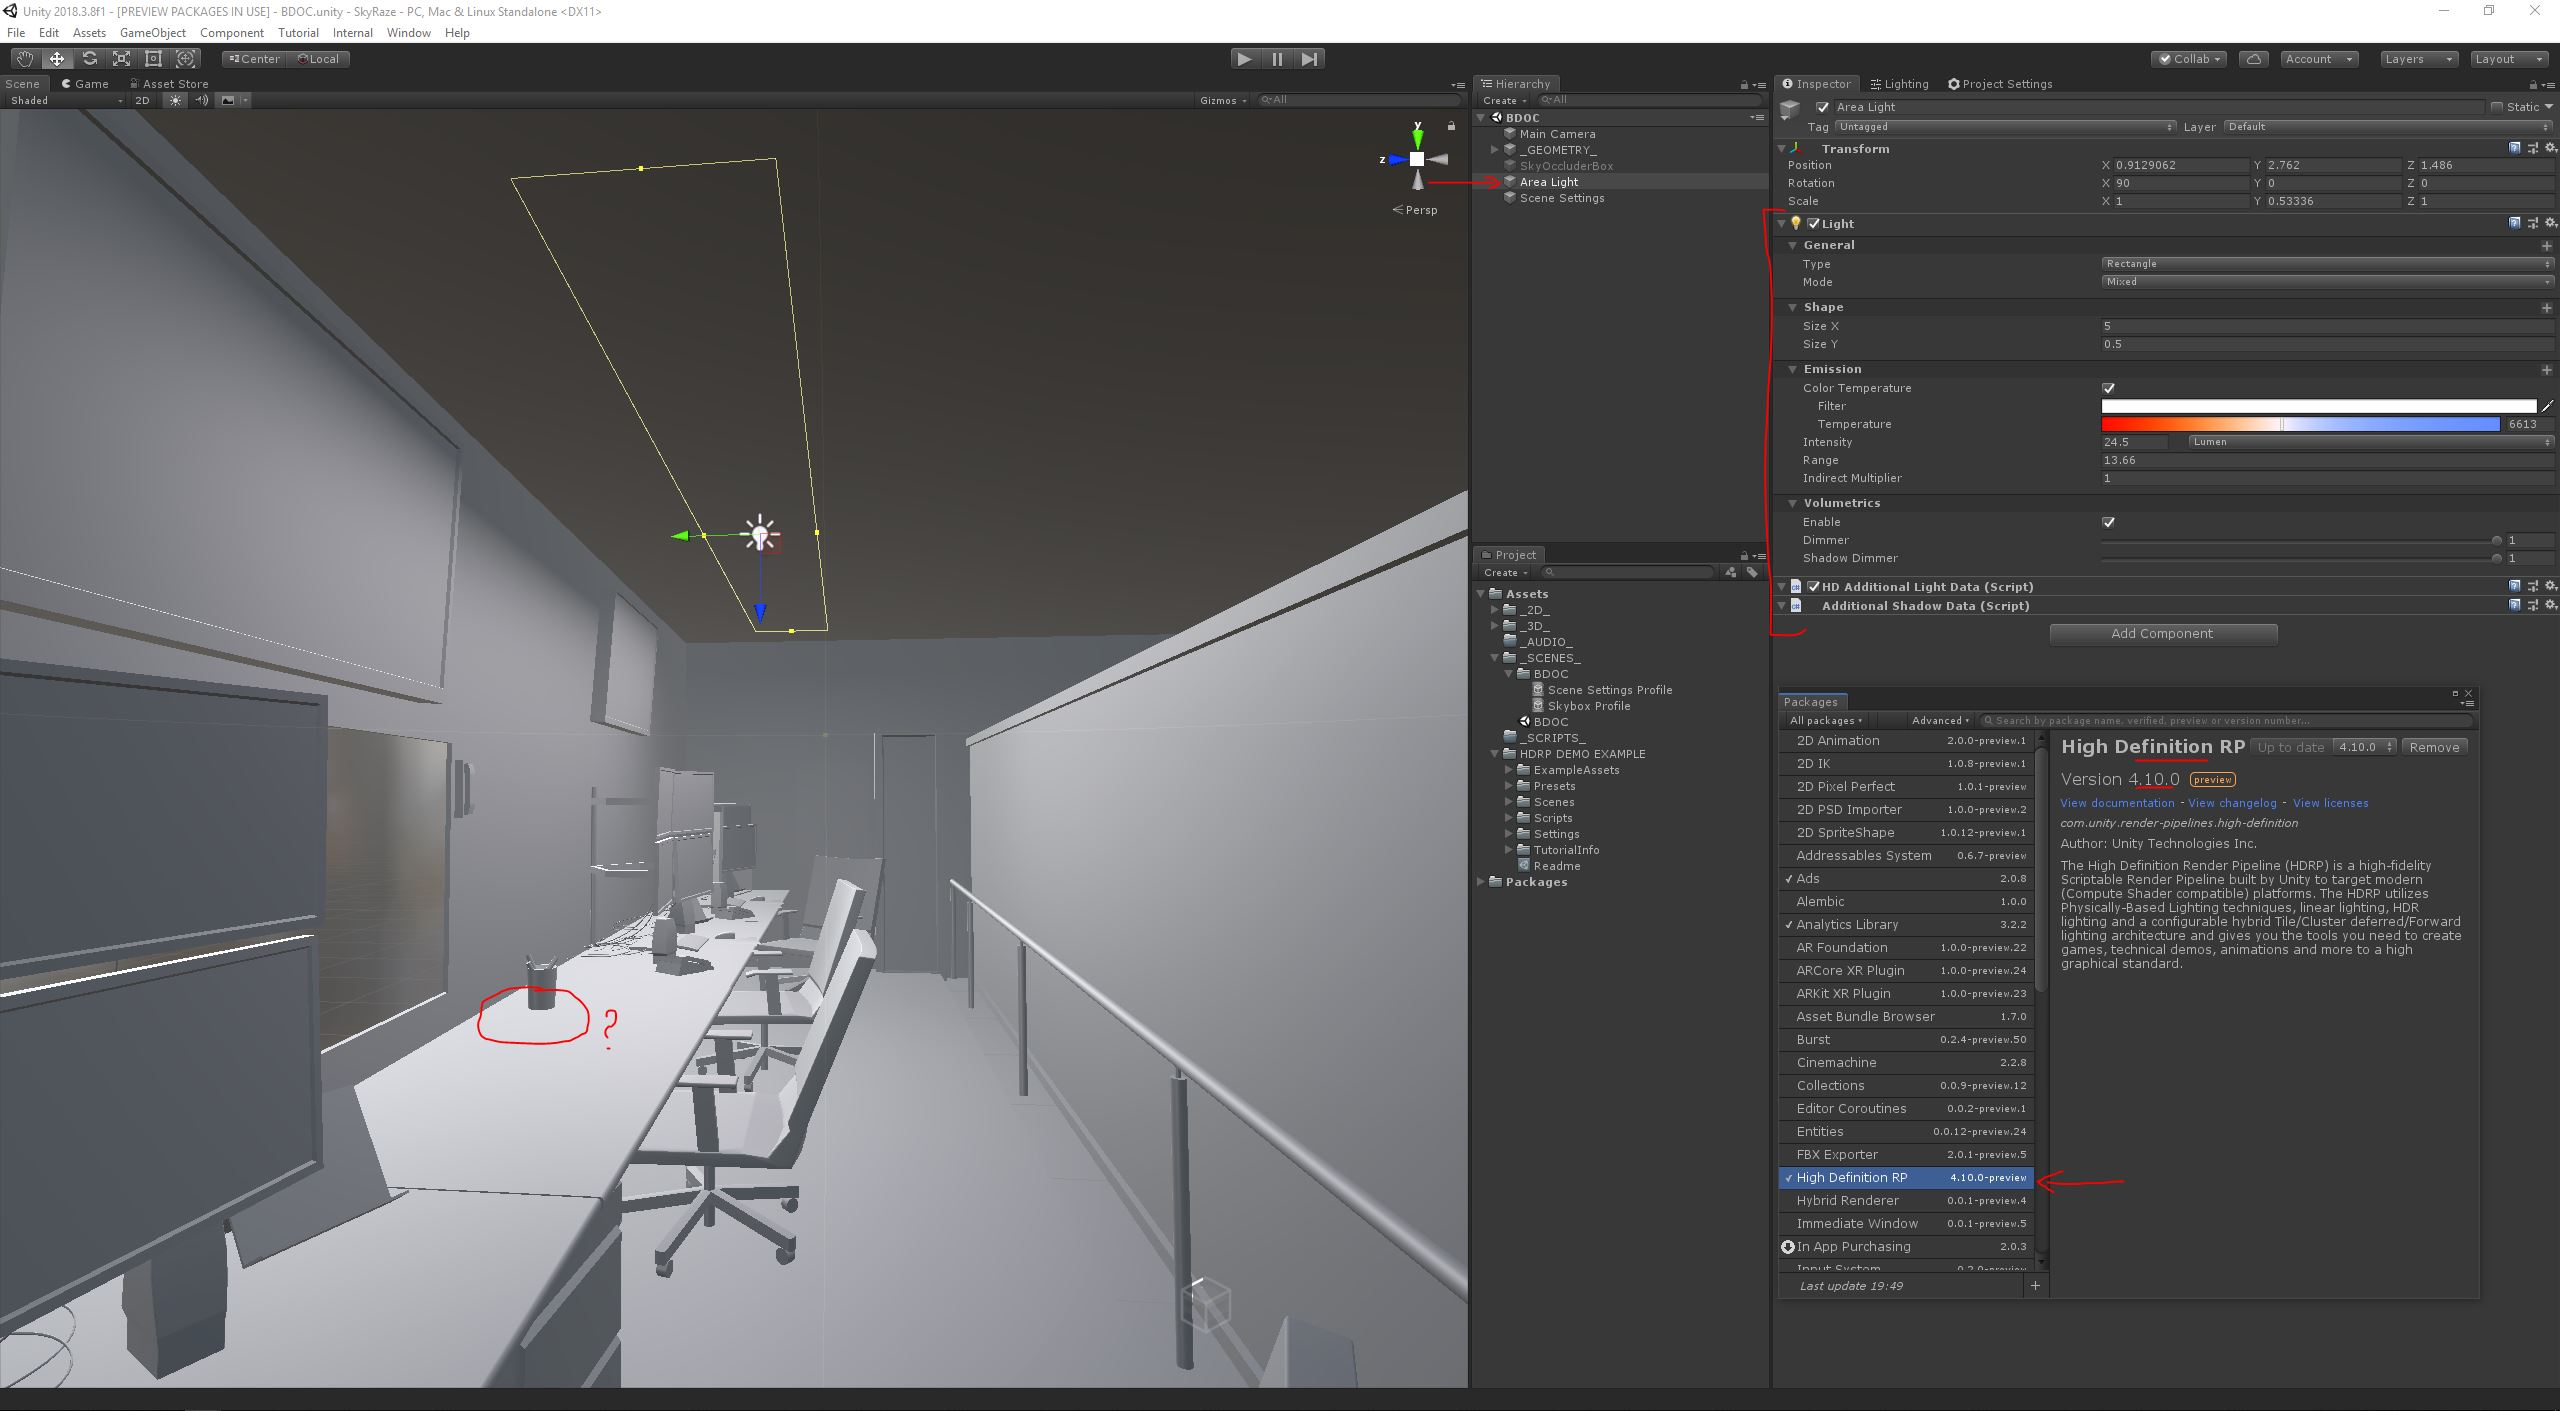 Unity 2018 3 8f1 HDRP : Area Light Shadows feature not